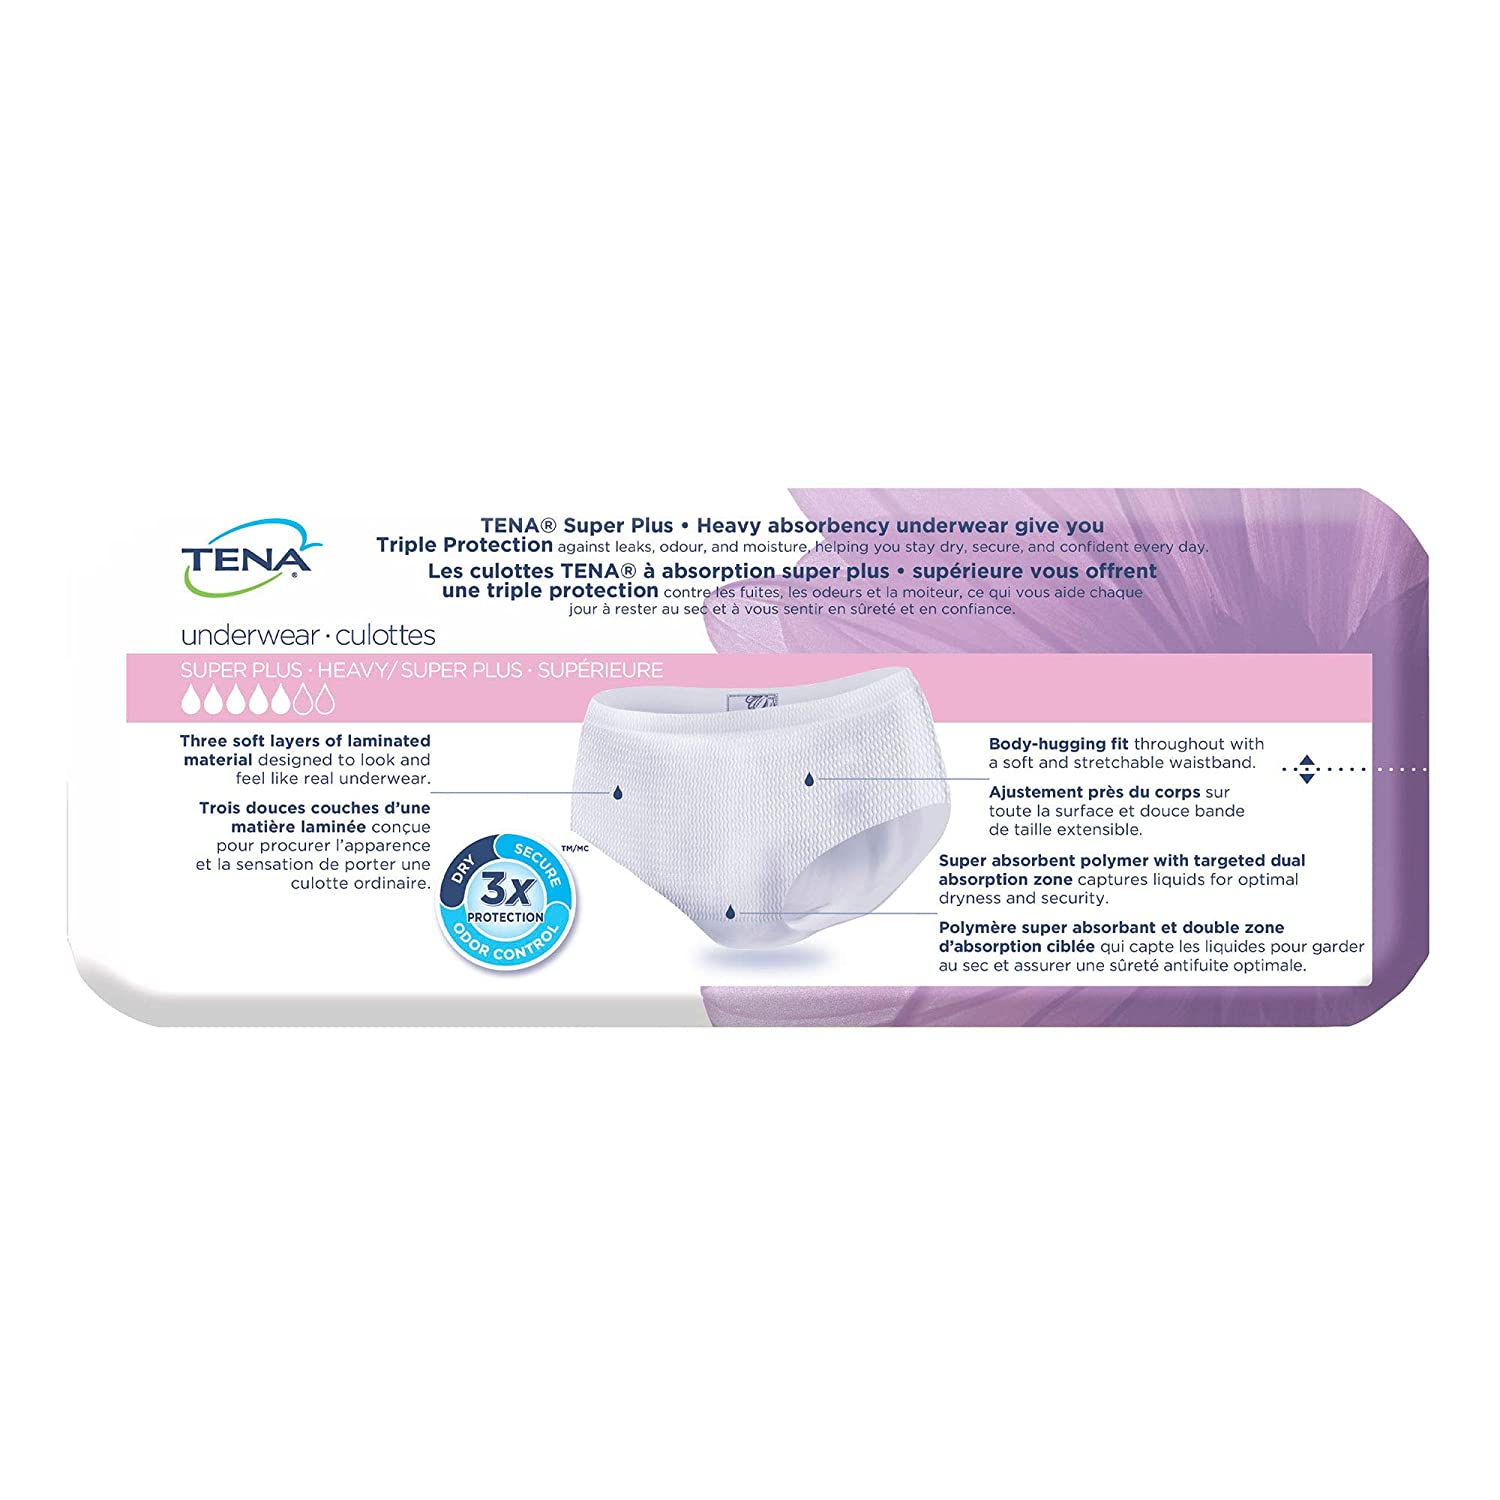 507cfb4d7d544 Amazon.com: Tena Incontinence Underwear for Women, Super Plus Absorbency,  Large, 16 Count: Health & Personal Care